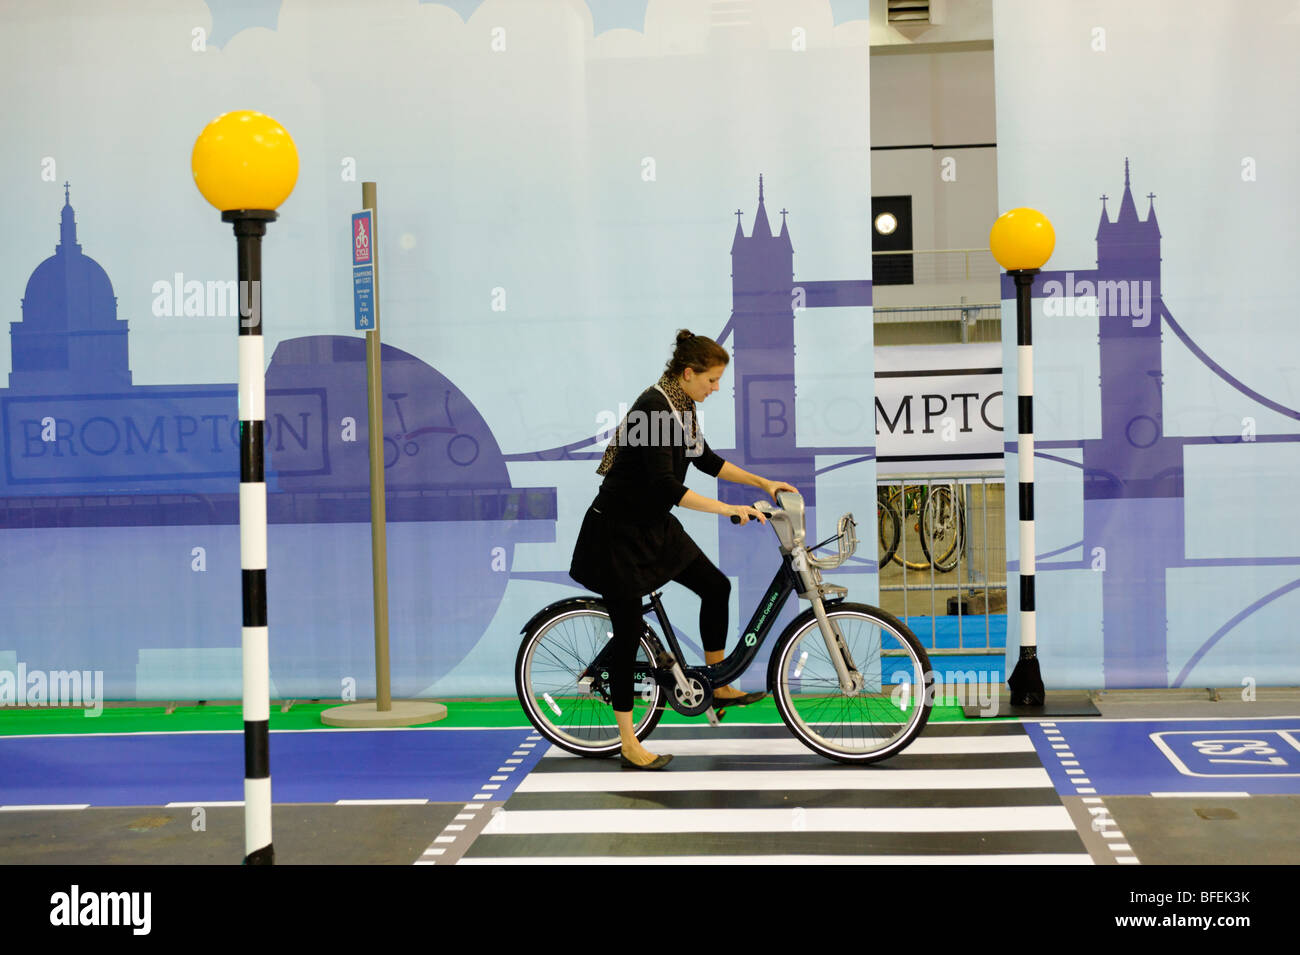 TFL Cycle Hire bikes, public bicycle sharing scheme which will launch in London 2010. Cycle Show. London 2009. - Stock Image